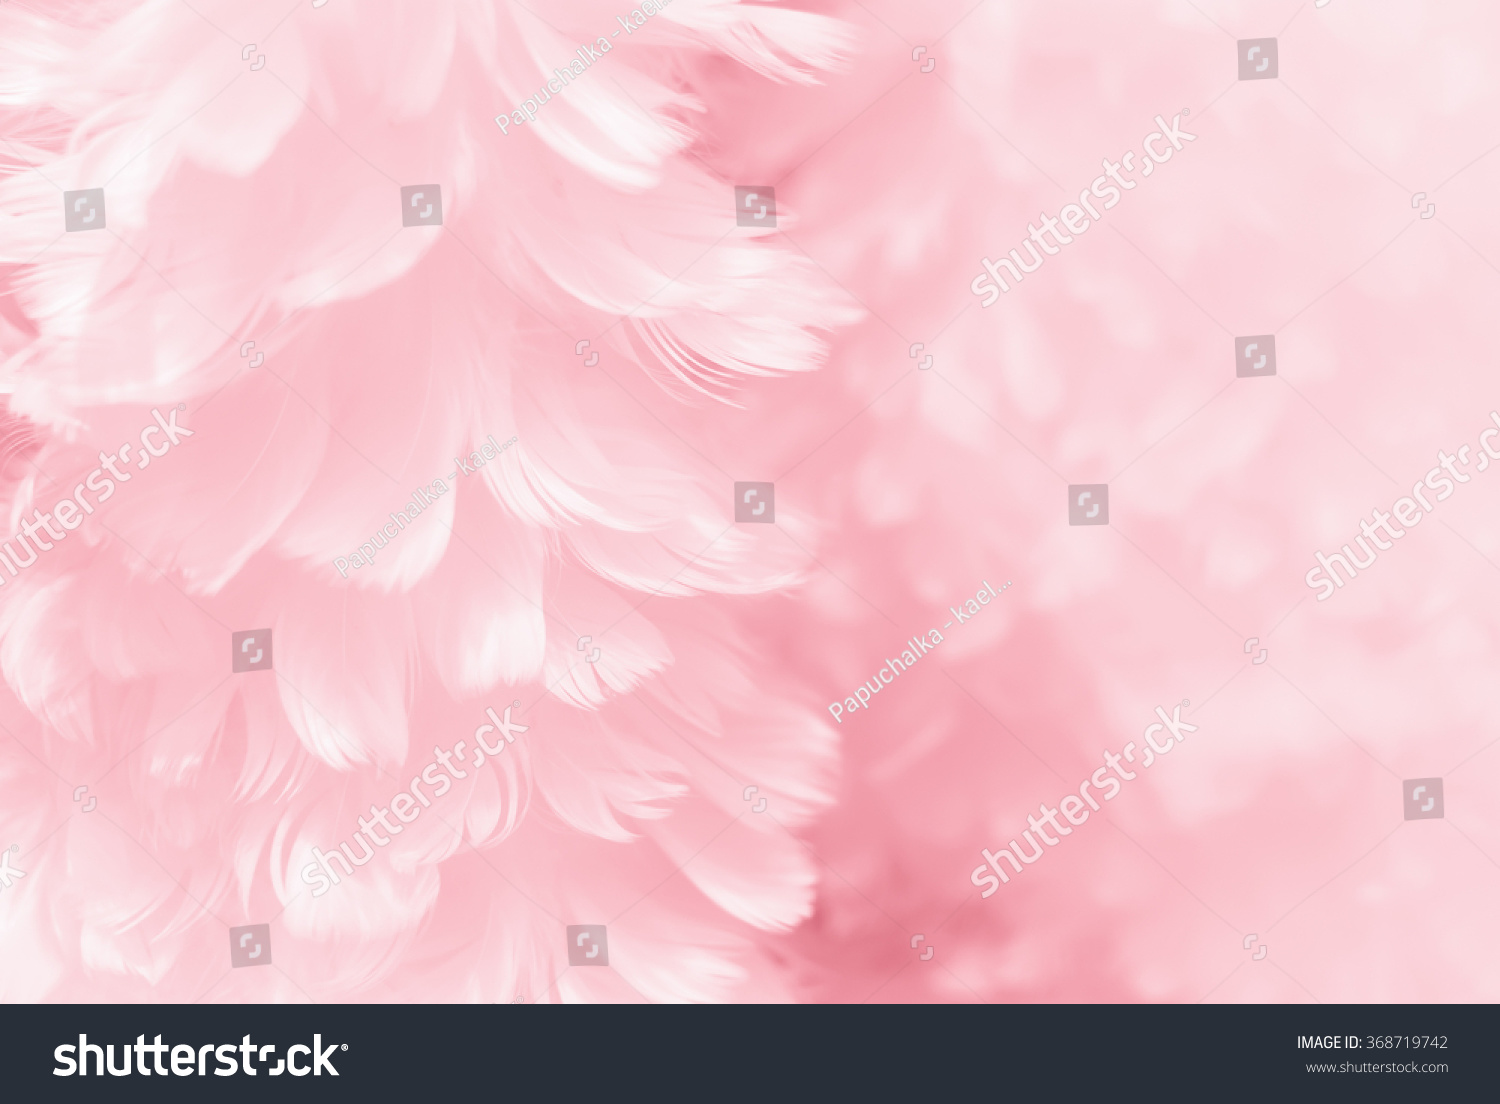 Fluffy mauve pink feather fashion design background - black and white tinted Valentine day fuzzy textured photograph - soft focus